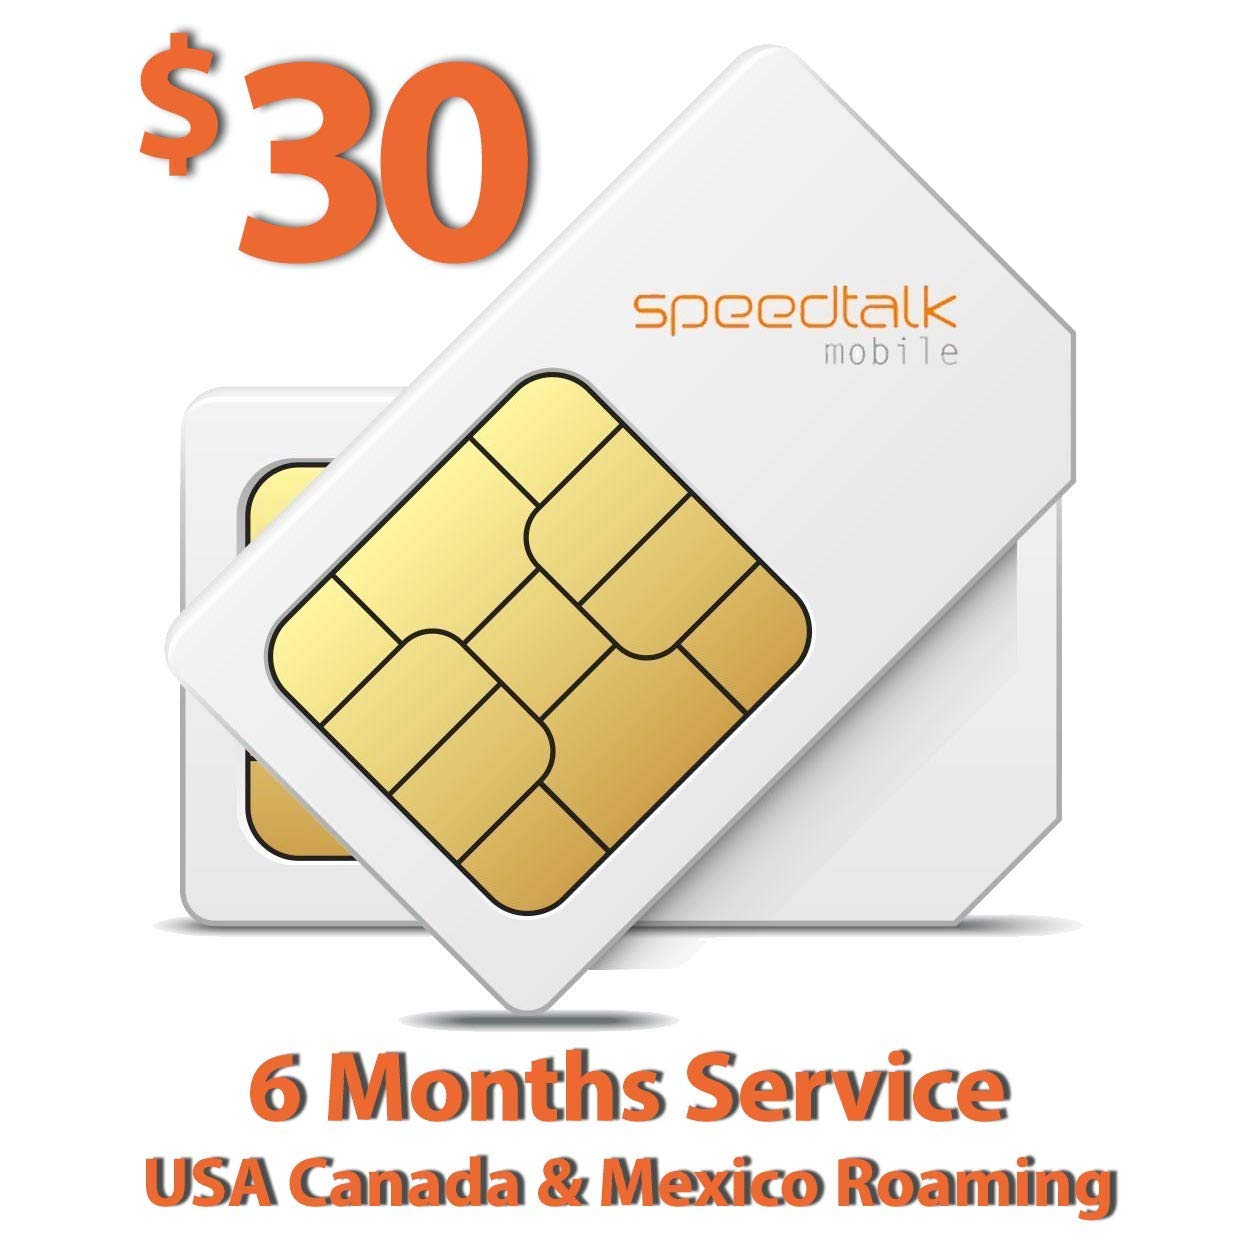 SIM Card for GSM GPS Tracking Kid Child Elderly Pet SmartWatch Car Tracker  Devices Locators - 6 Months Service - USA Canada & Mexico Roaming